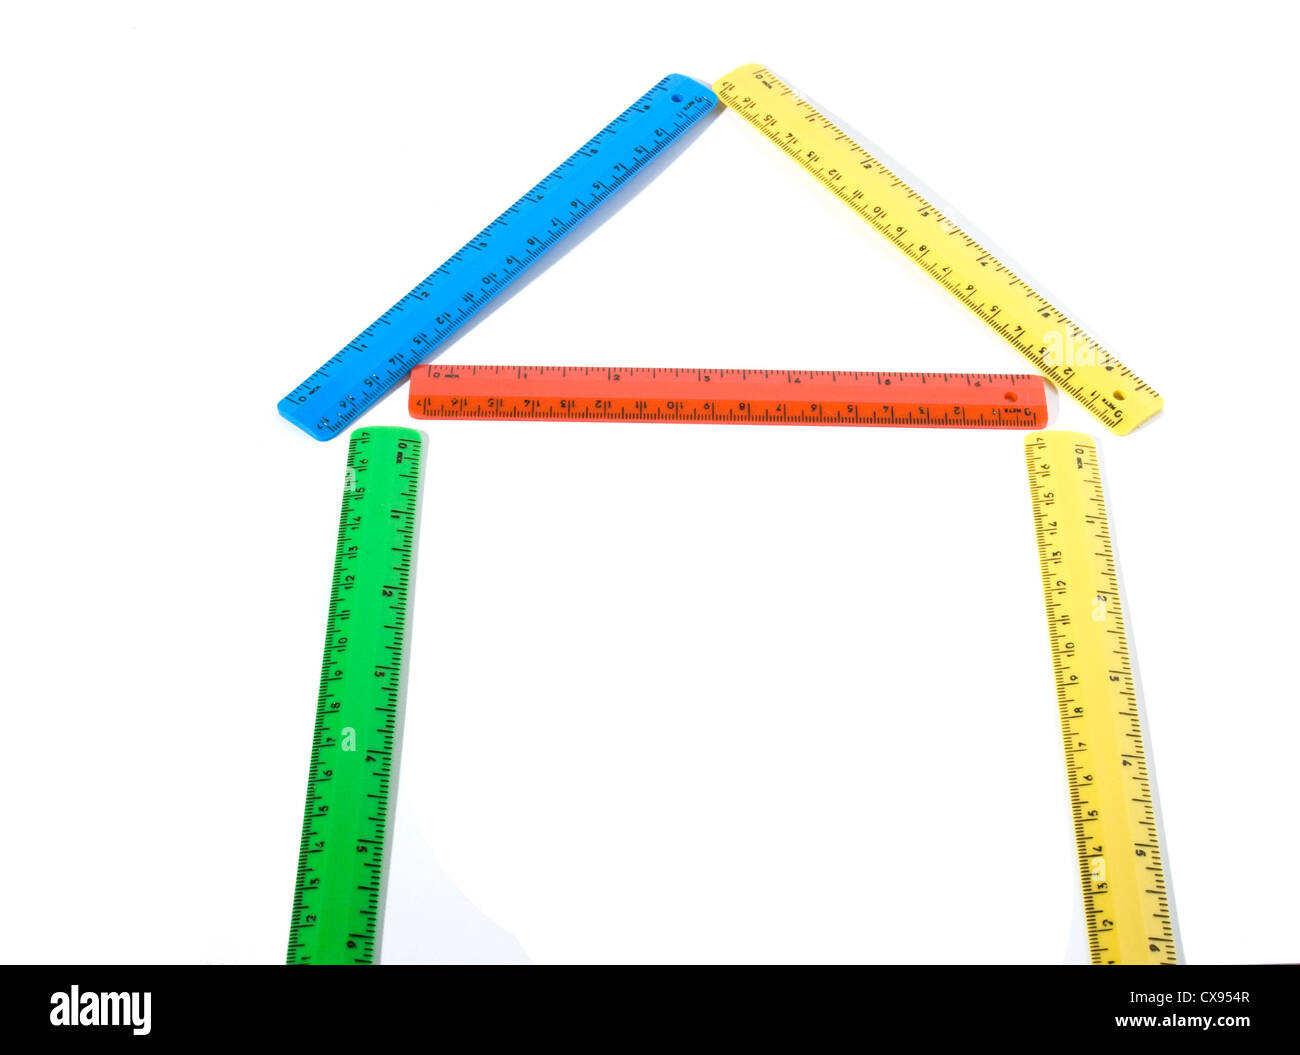 house made of colored rulers. Stock Photo